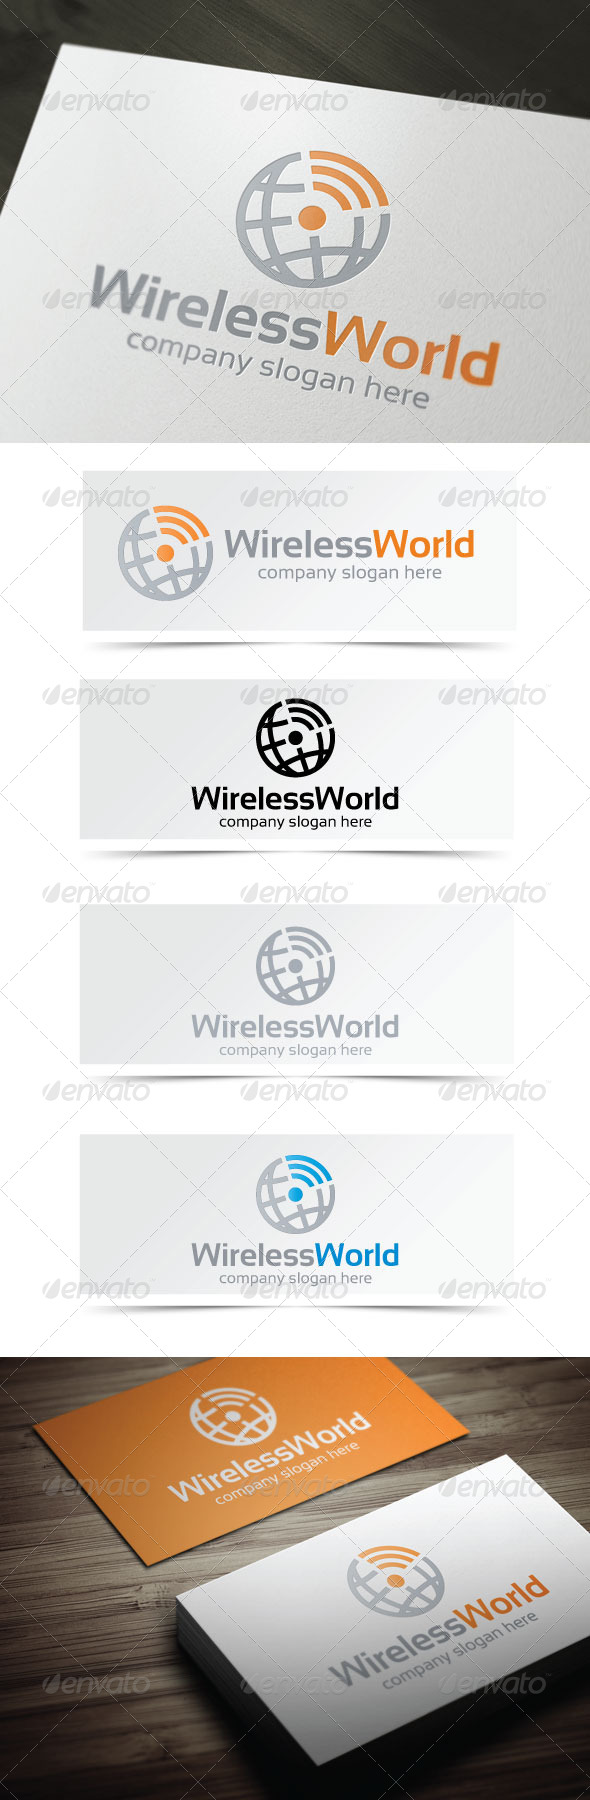 GraphicRiver Wireless World 4342737